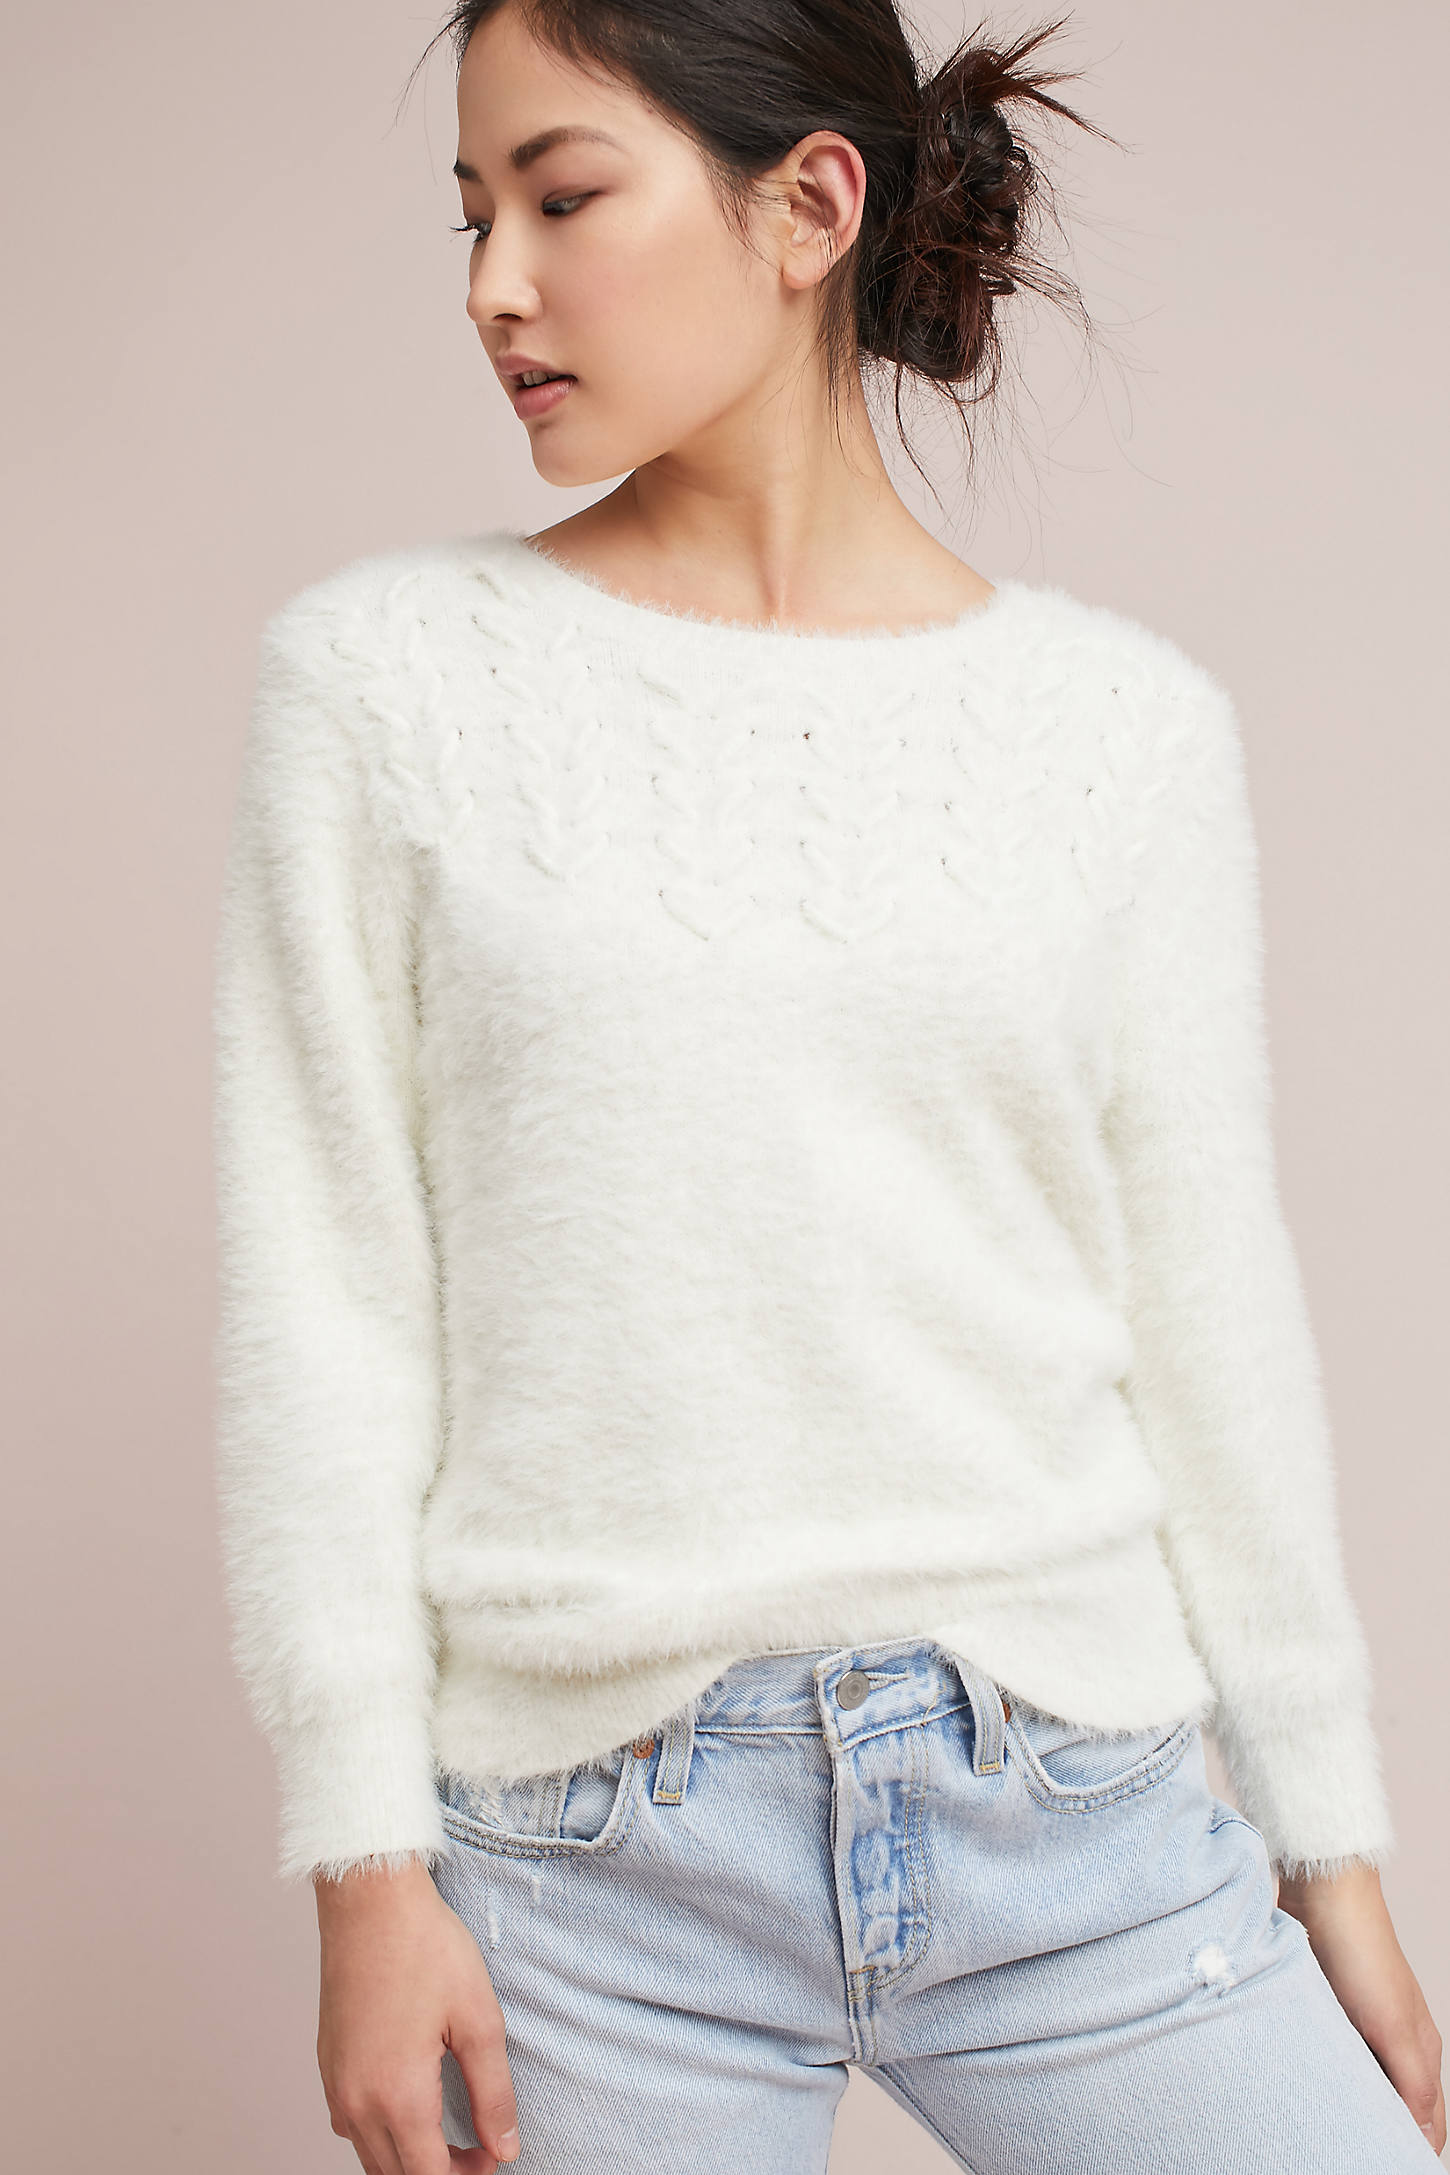 Aubade Pullover